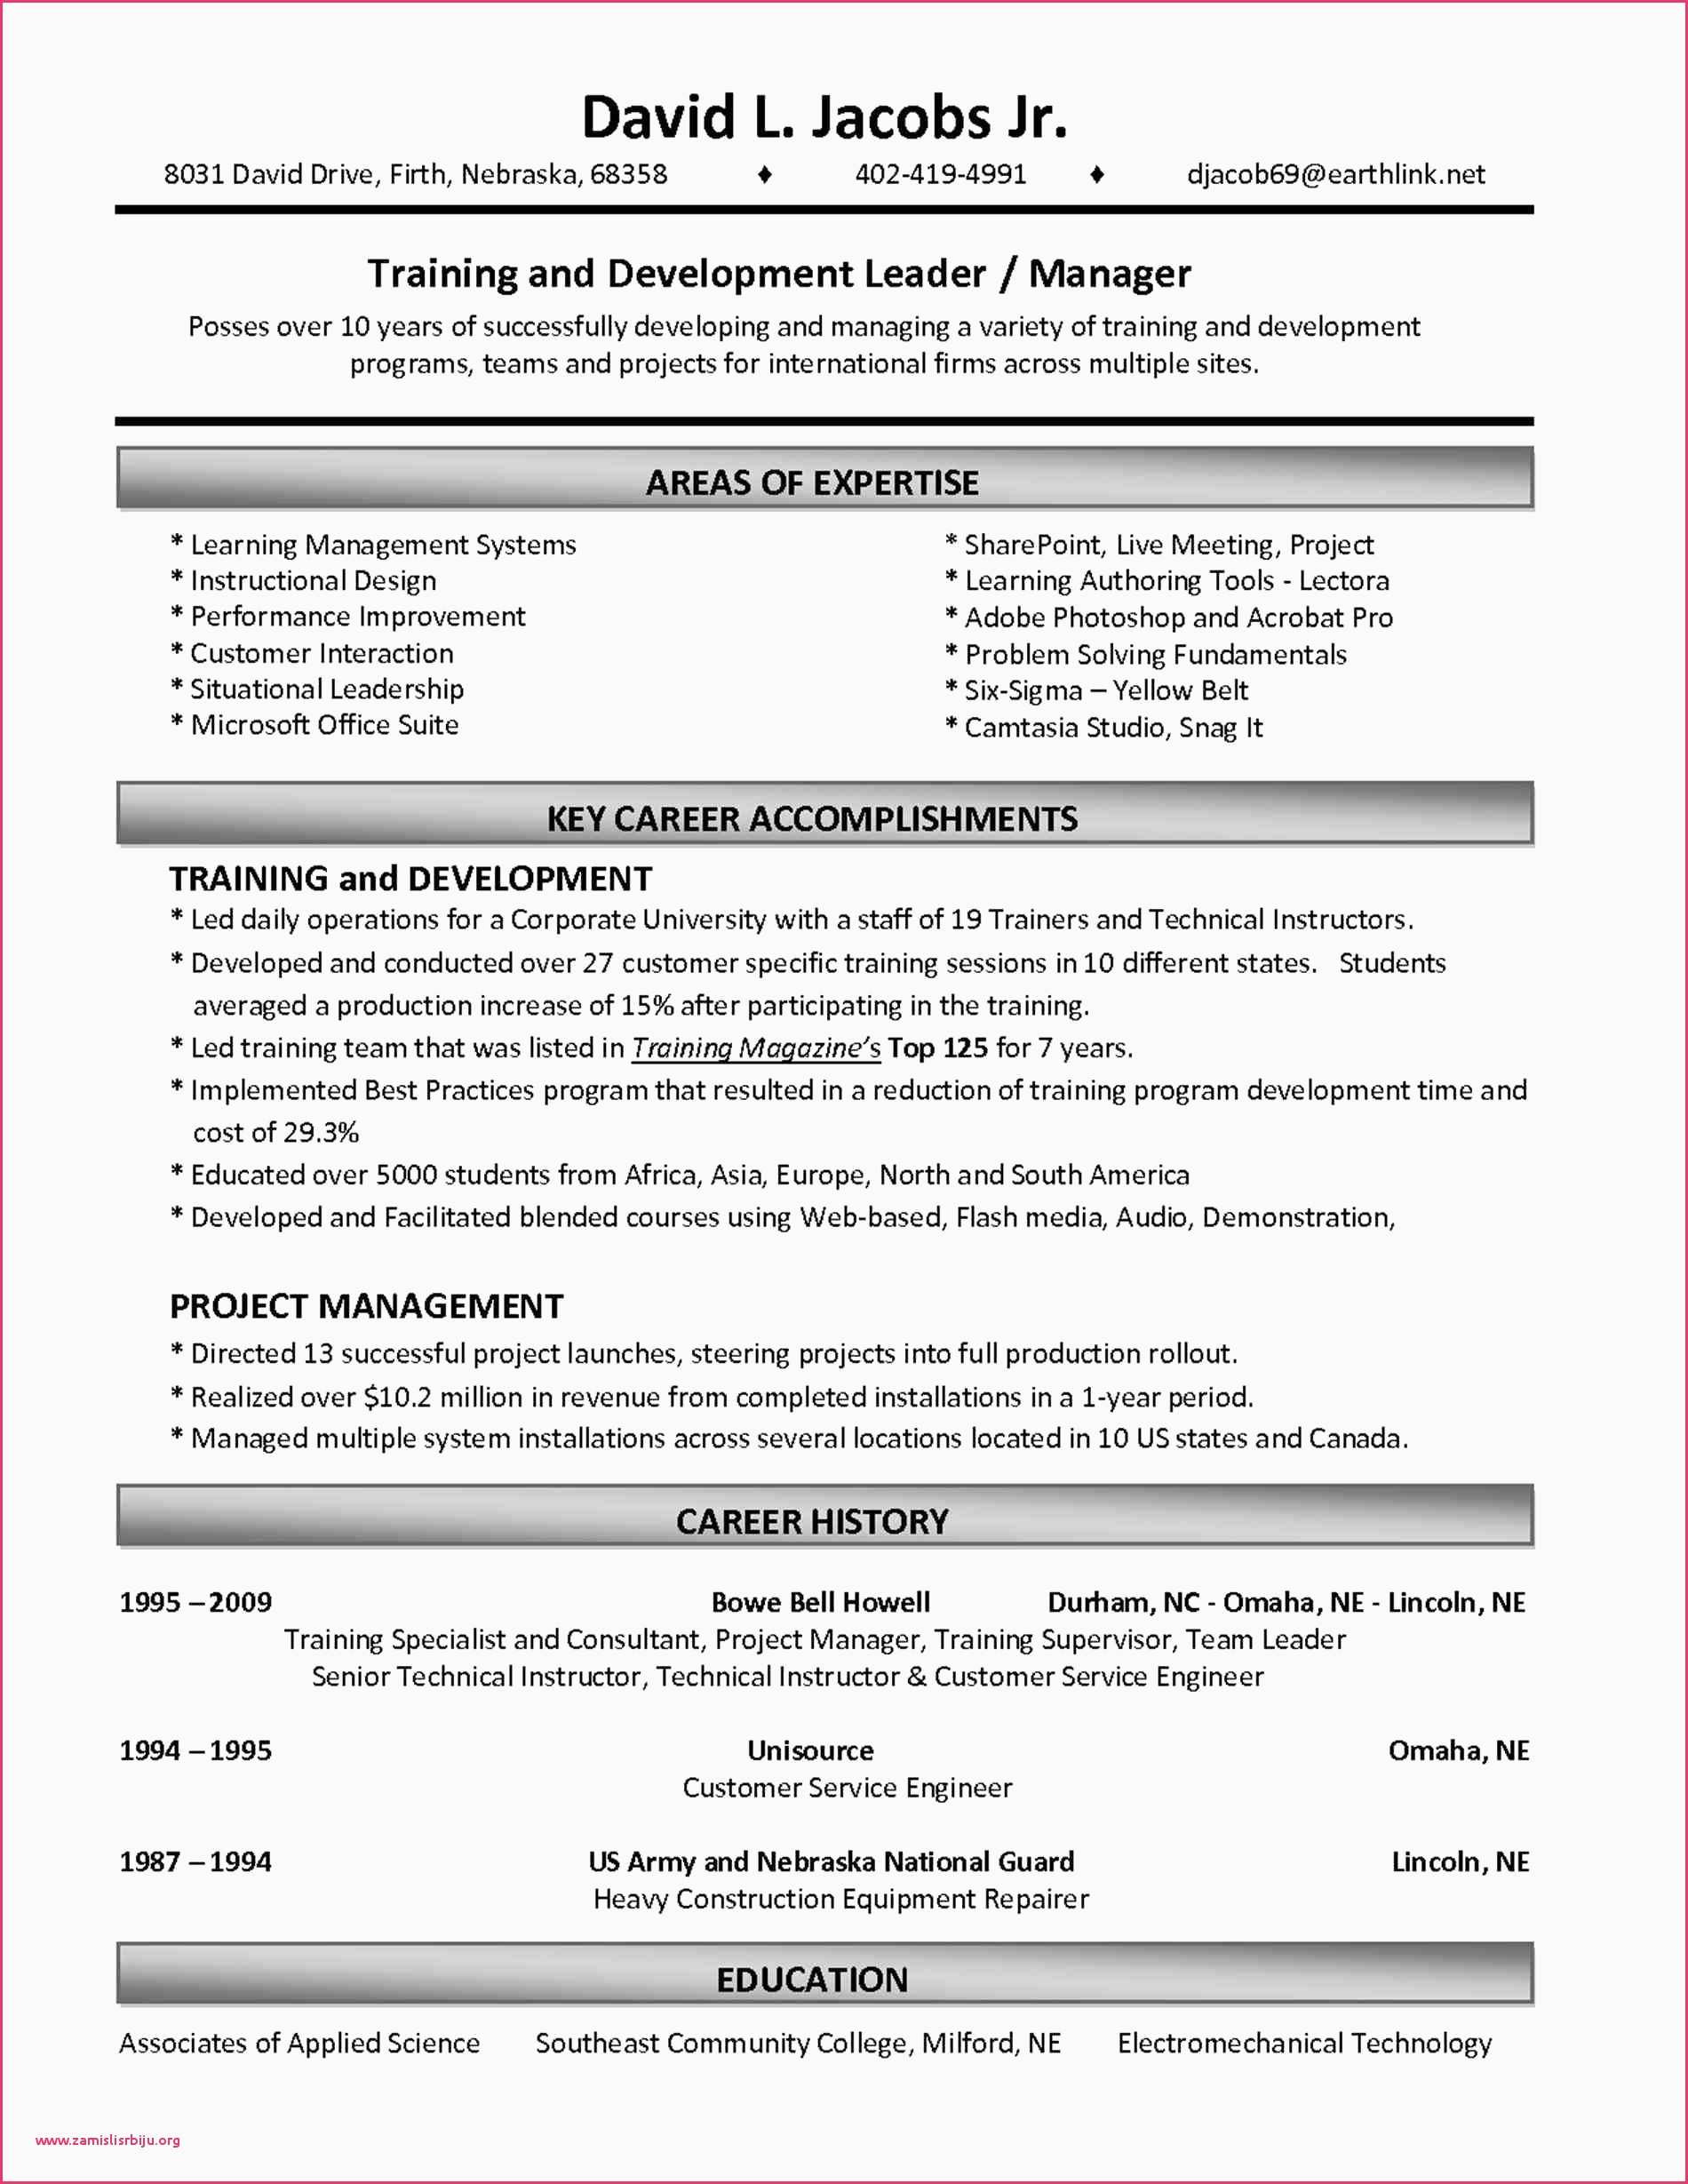 Superintendent Resume Template - Superintendent Resume Best Retail Supervisor Resume Resume Ideas